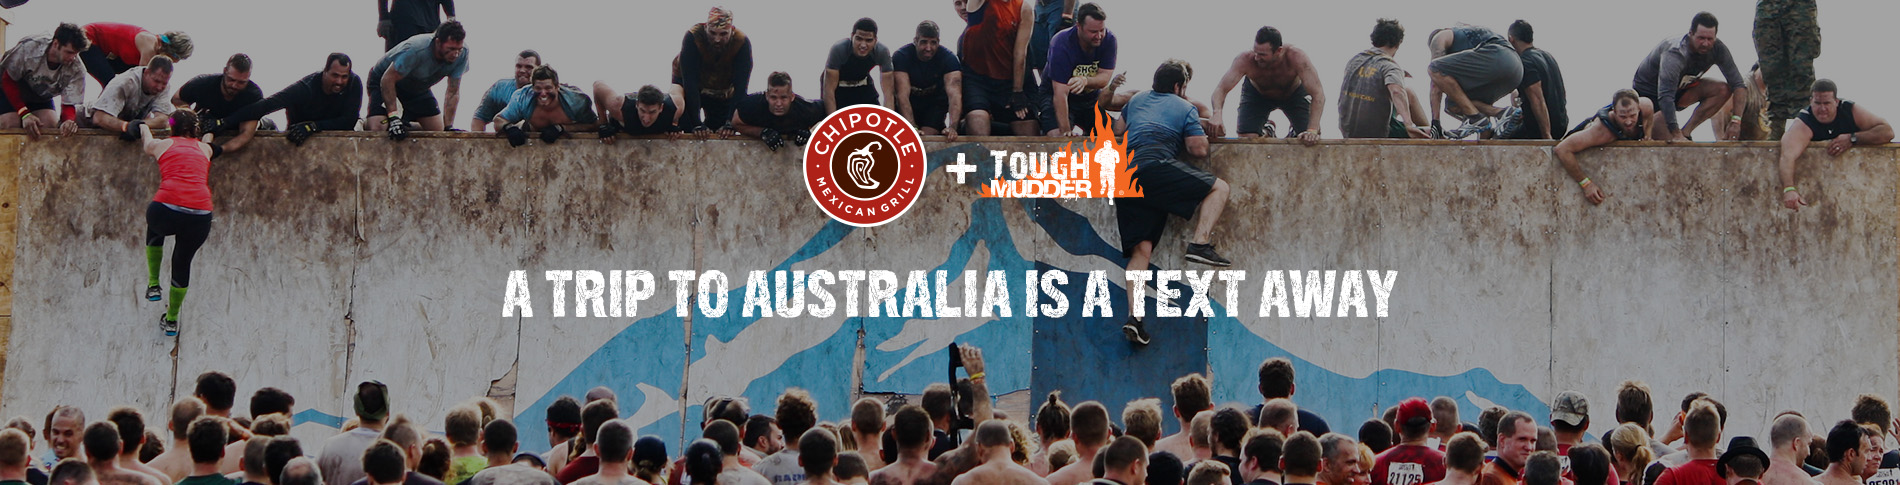 Chipotle subscribers were given a chance to win a trip to the Tough Mudder competition in Australia. All they had to do was to send a text message.